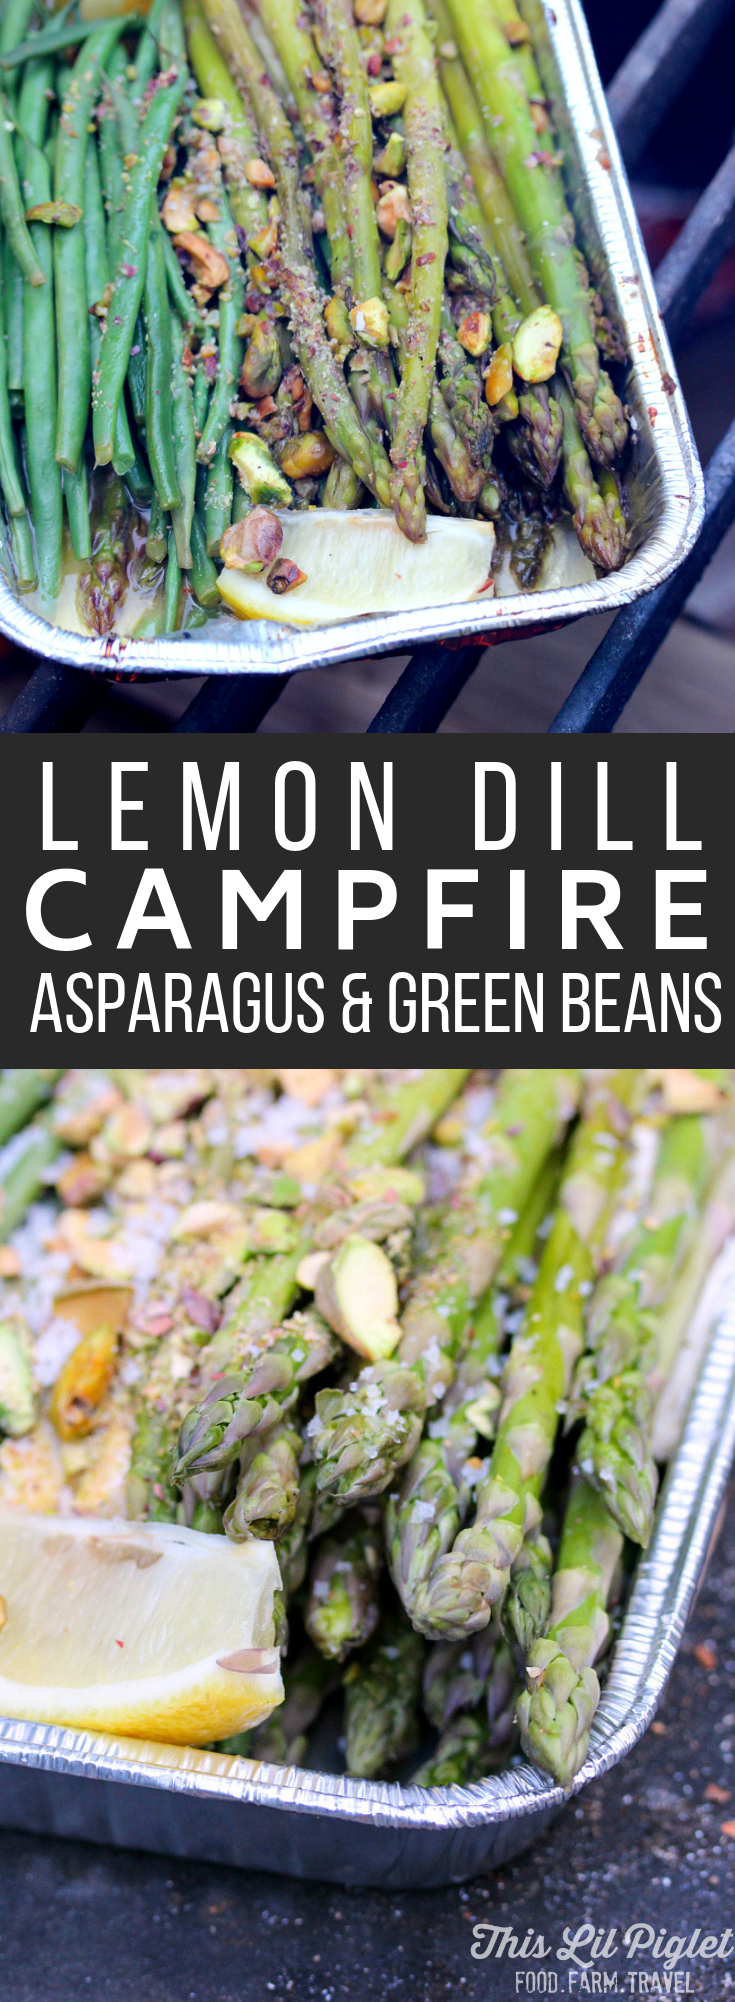 Camping Food: Lemon Dill Campfire Asparagus and Green Beans // thislilpiglet.net